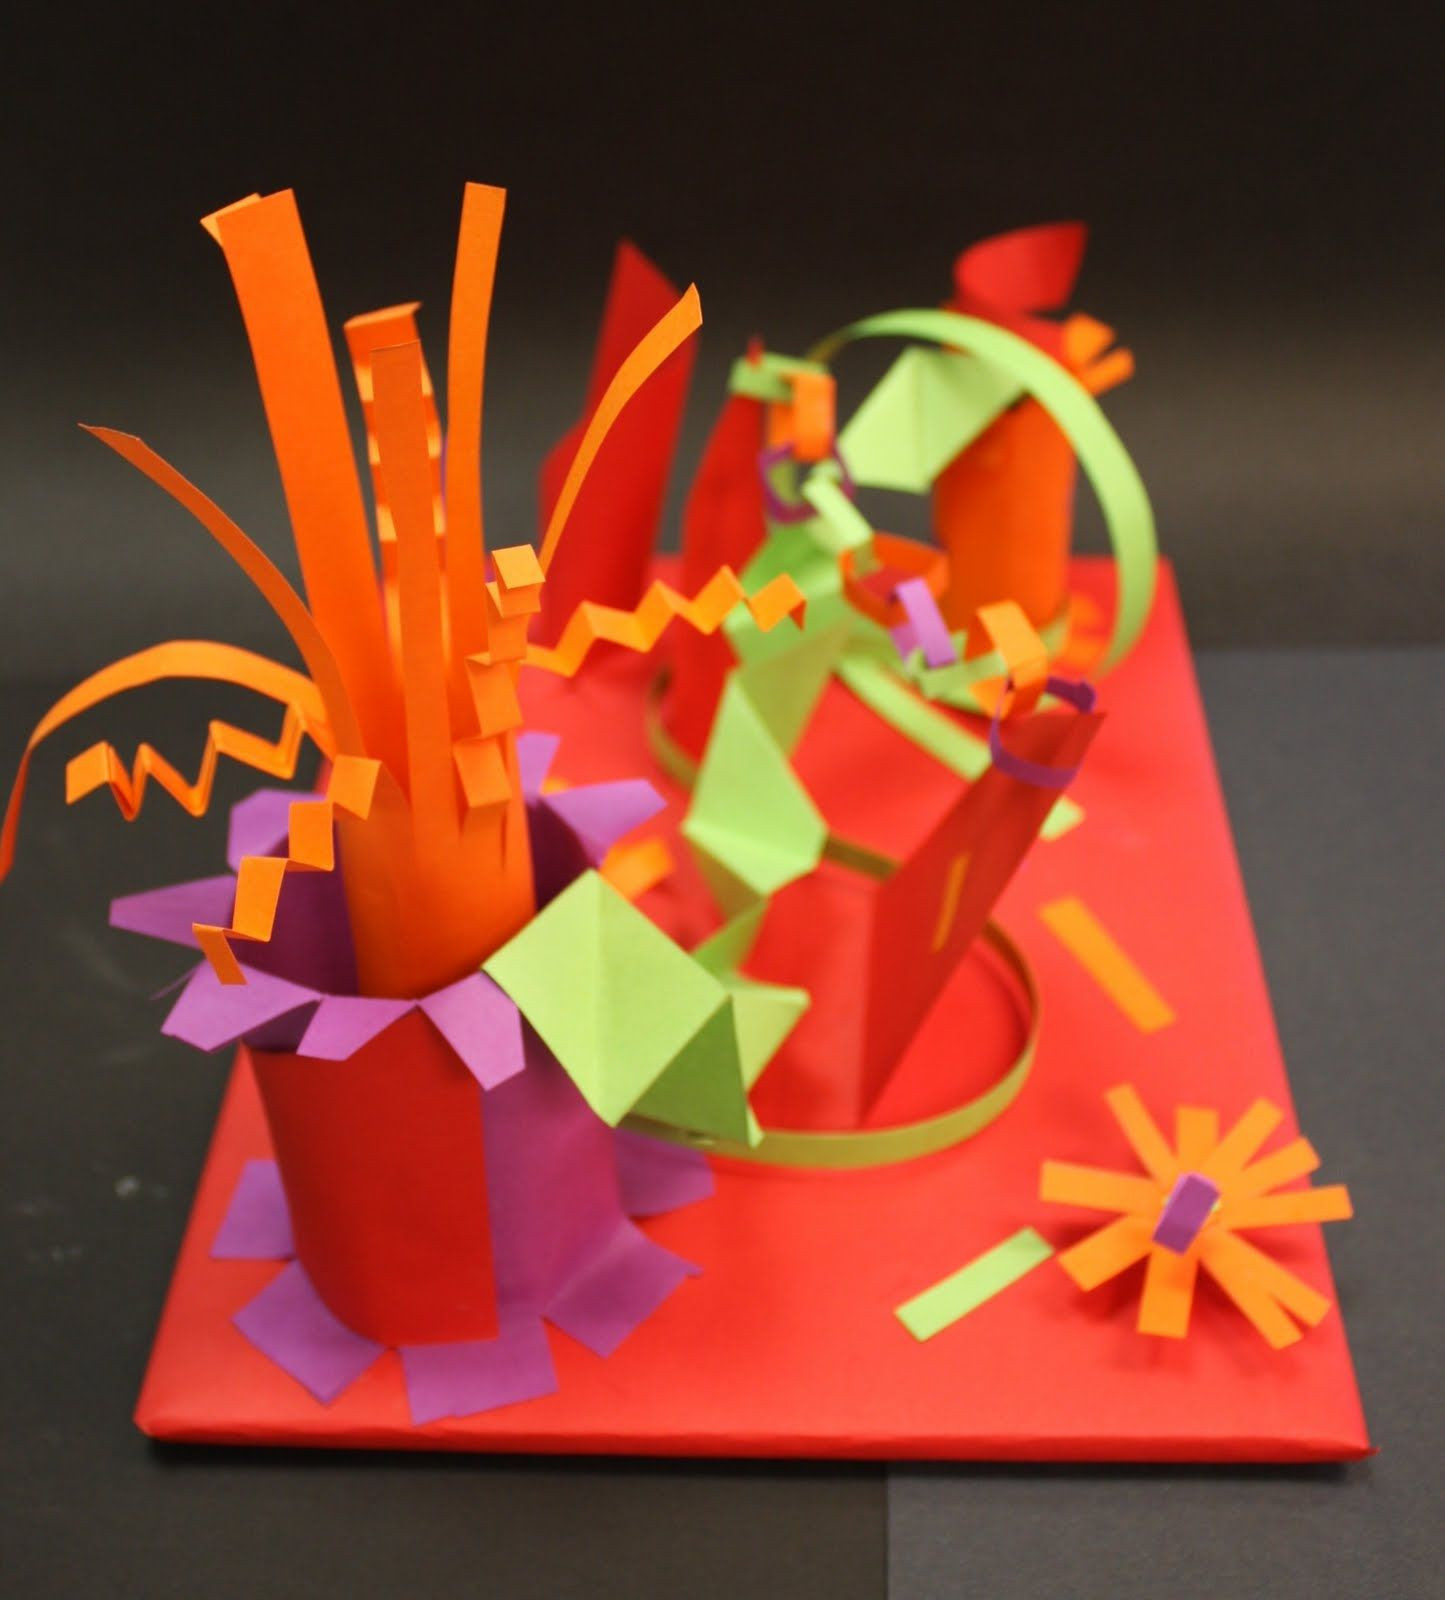 Best ideas about 3D Art Projects For Kids . Save or Pin Wow fun paper sculpture Teaches great fine motor Now.